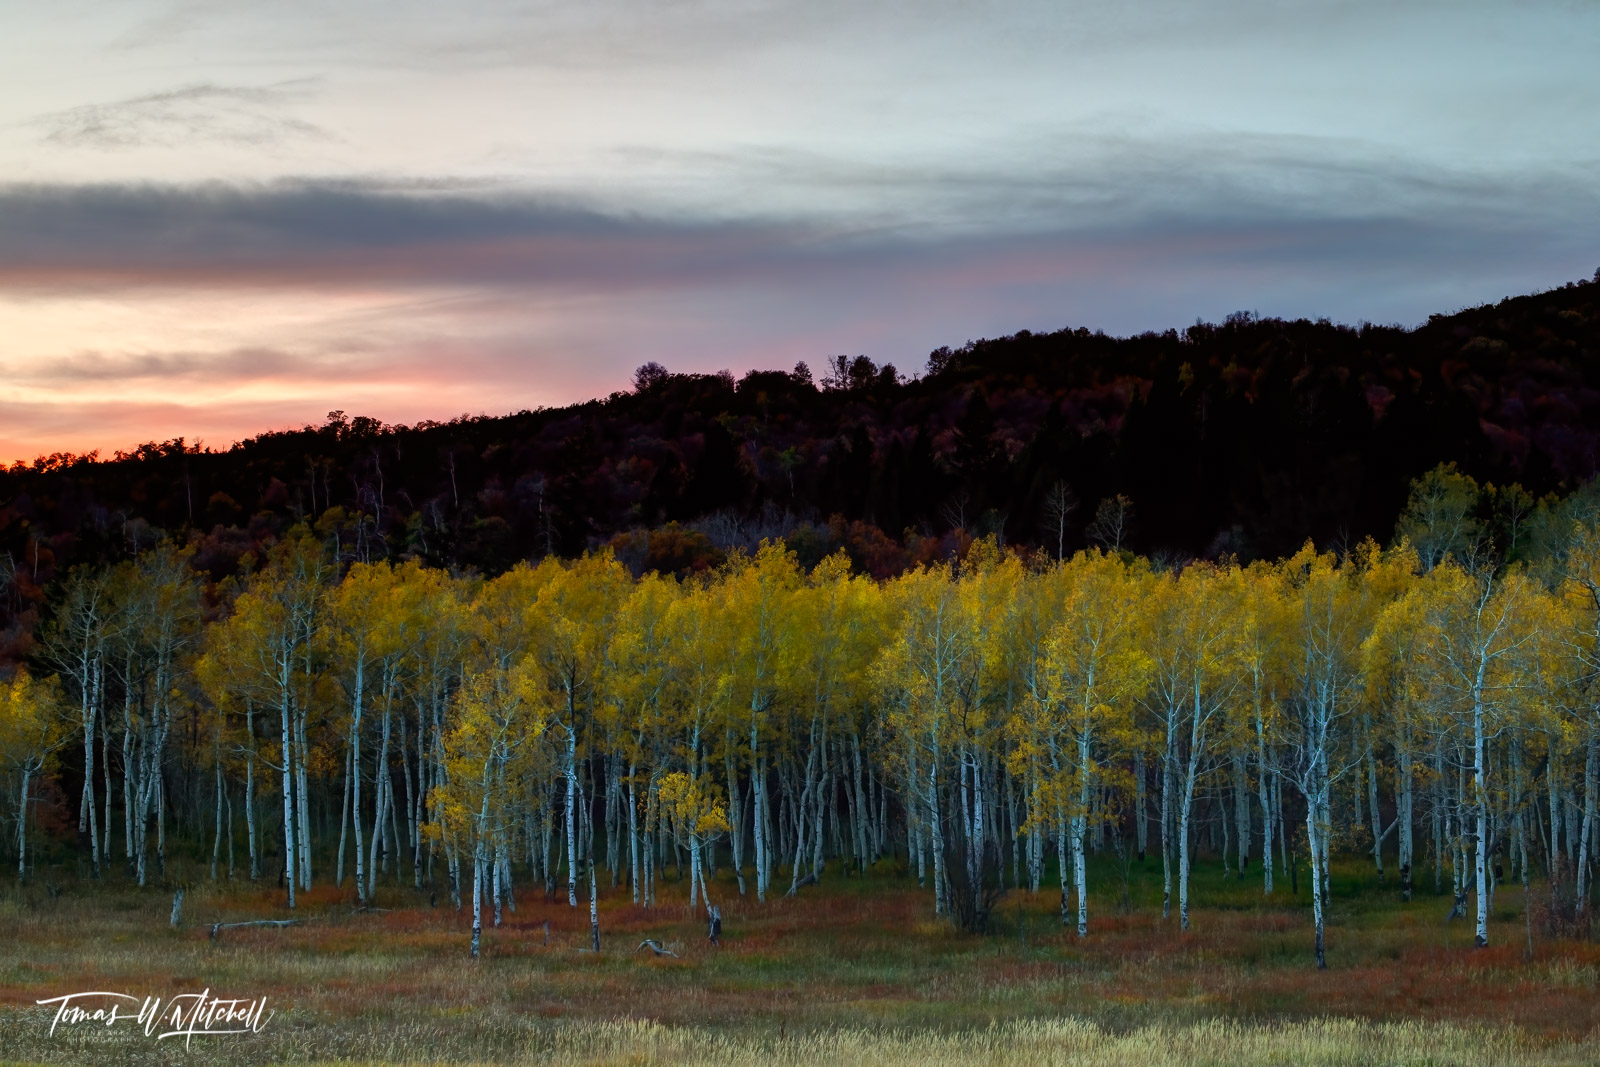 limited edition, fine art, prints, forest, trees, mood, enchanted, aspen trees, sunset, photograph, shades, color, dusk, leaves, grass, evening, yellow, red, green, photo